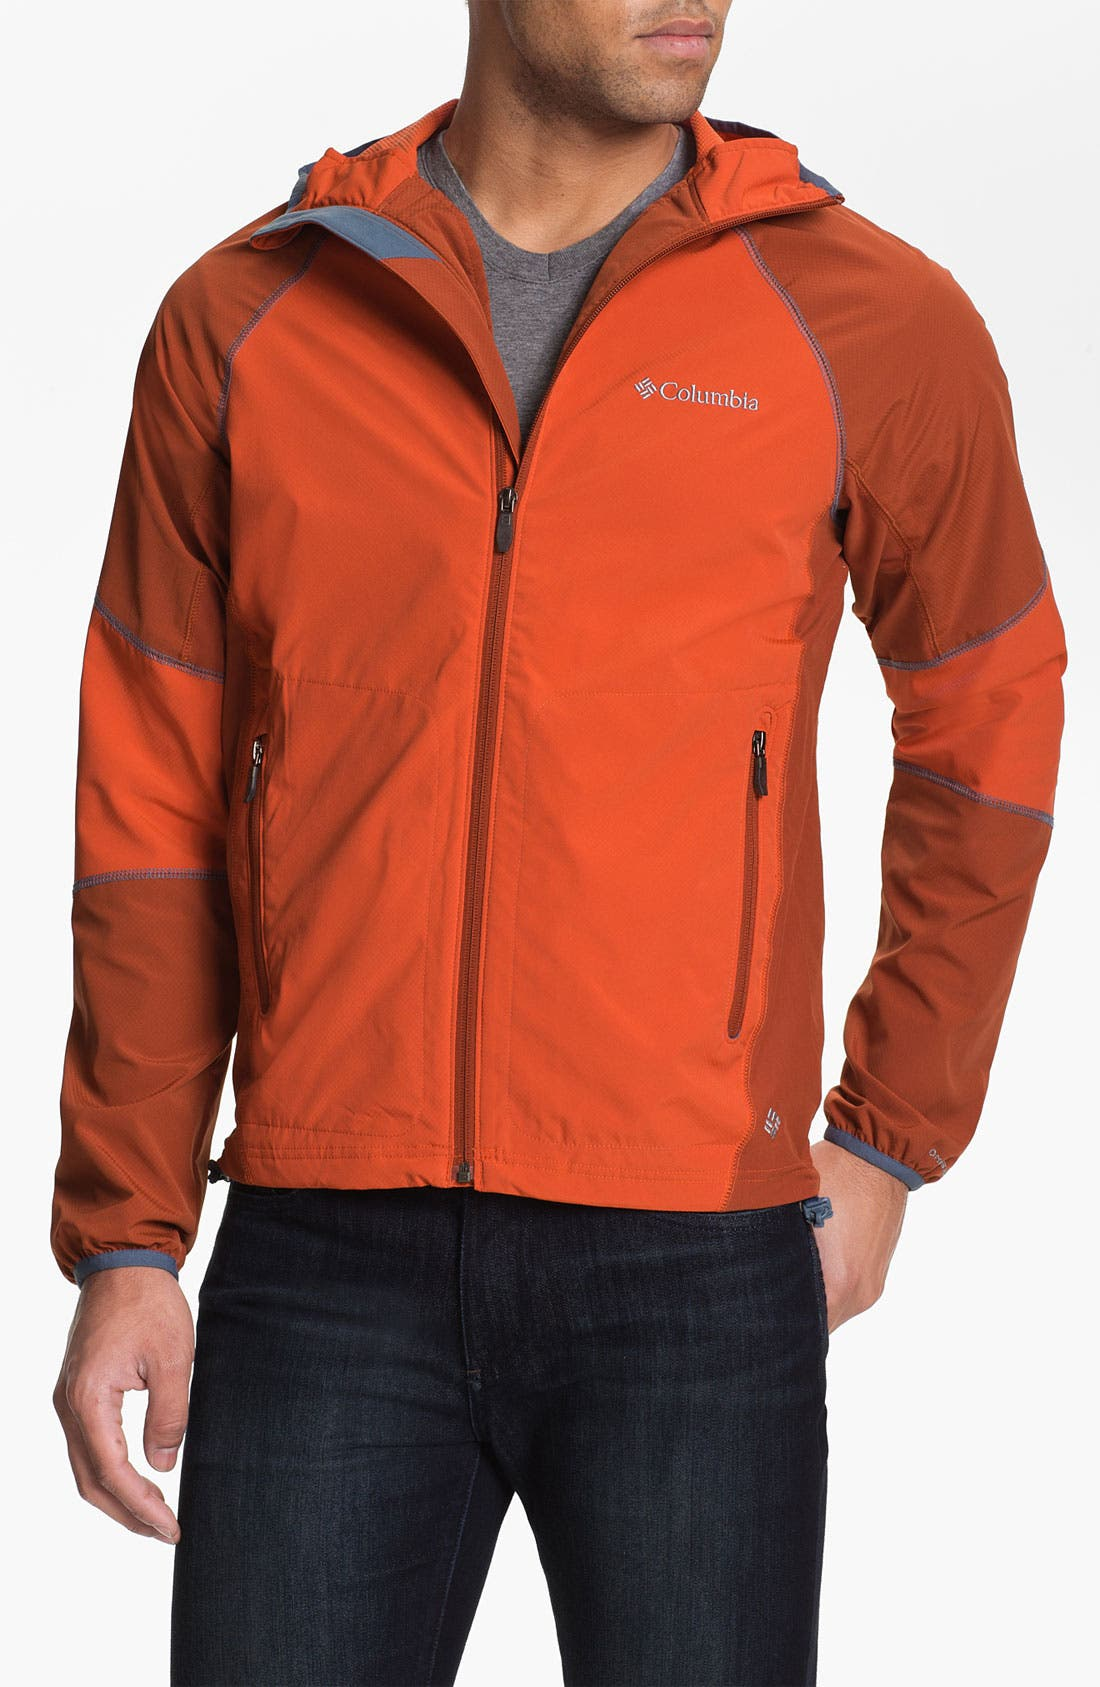 Main Image - Columbia 'Sweet As™' Soft Shell Jacket